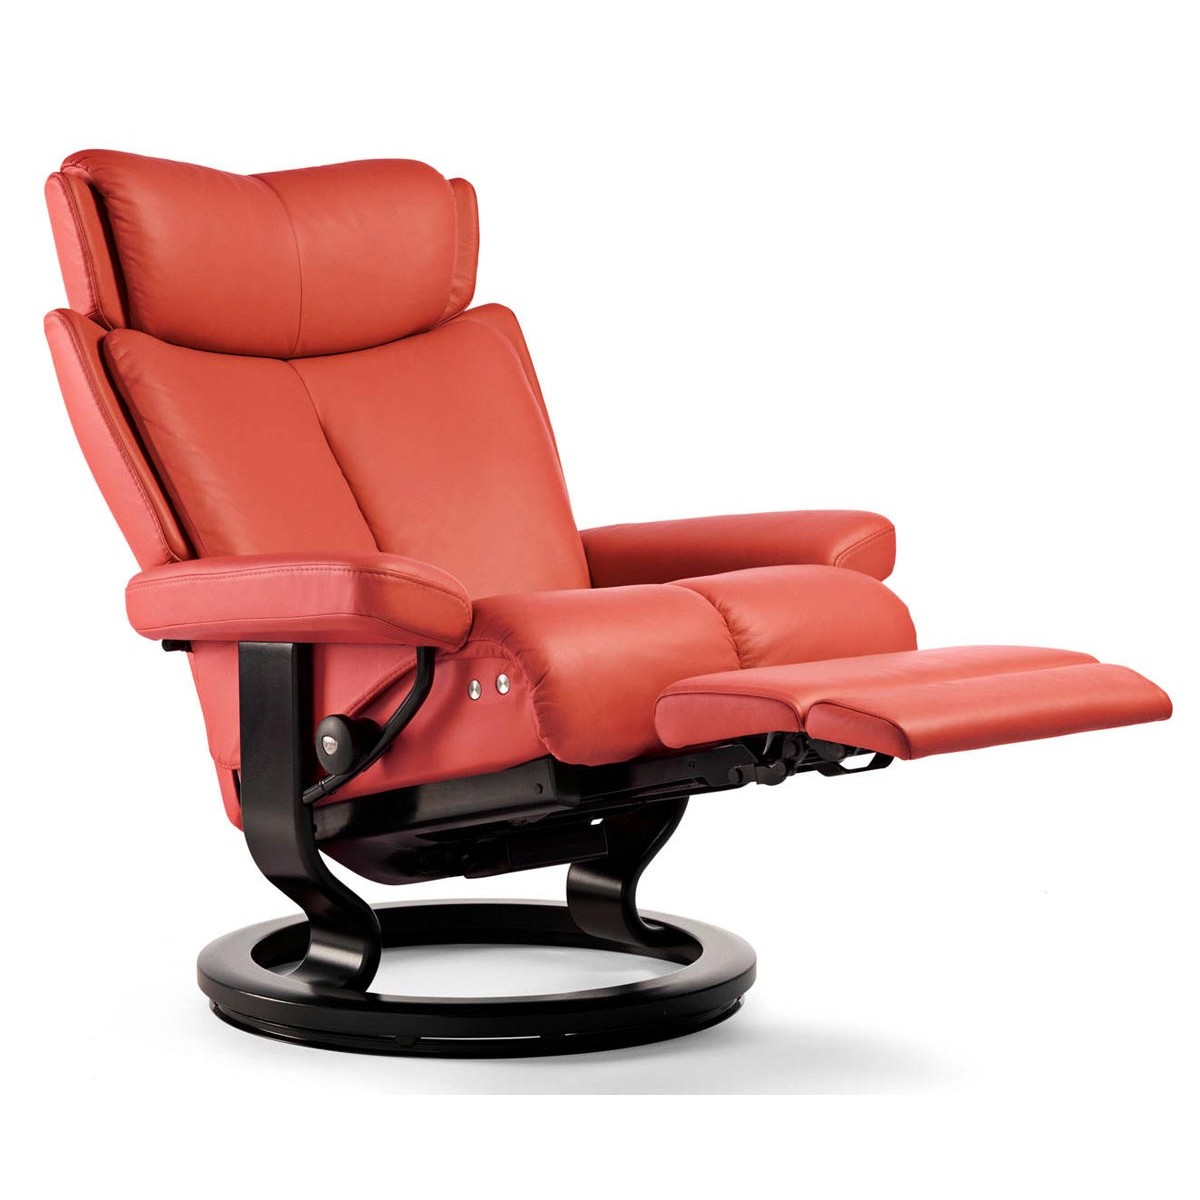 Stressless Wing Classic Legcomfort Stressless Magic Classic Legcomfort From 3 395 00 By